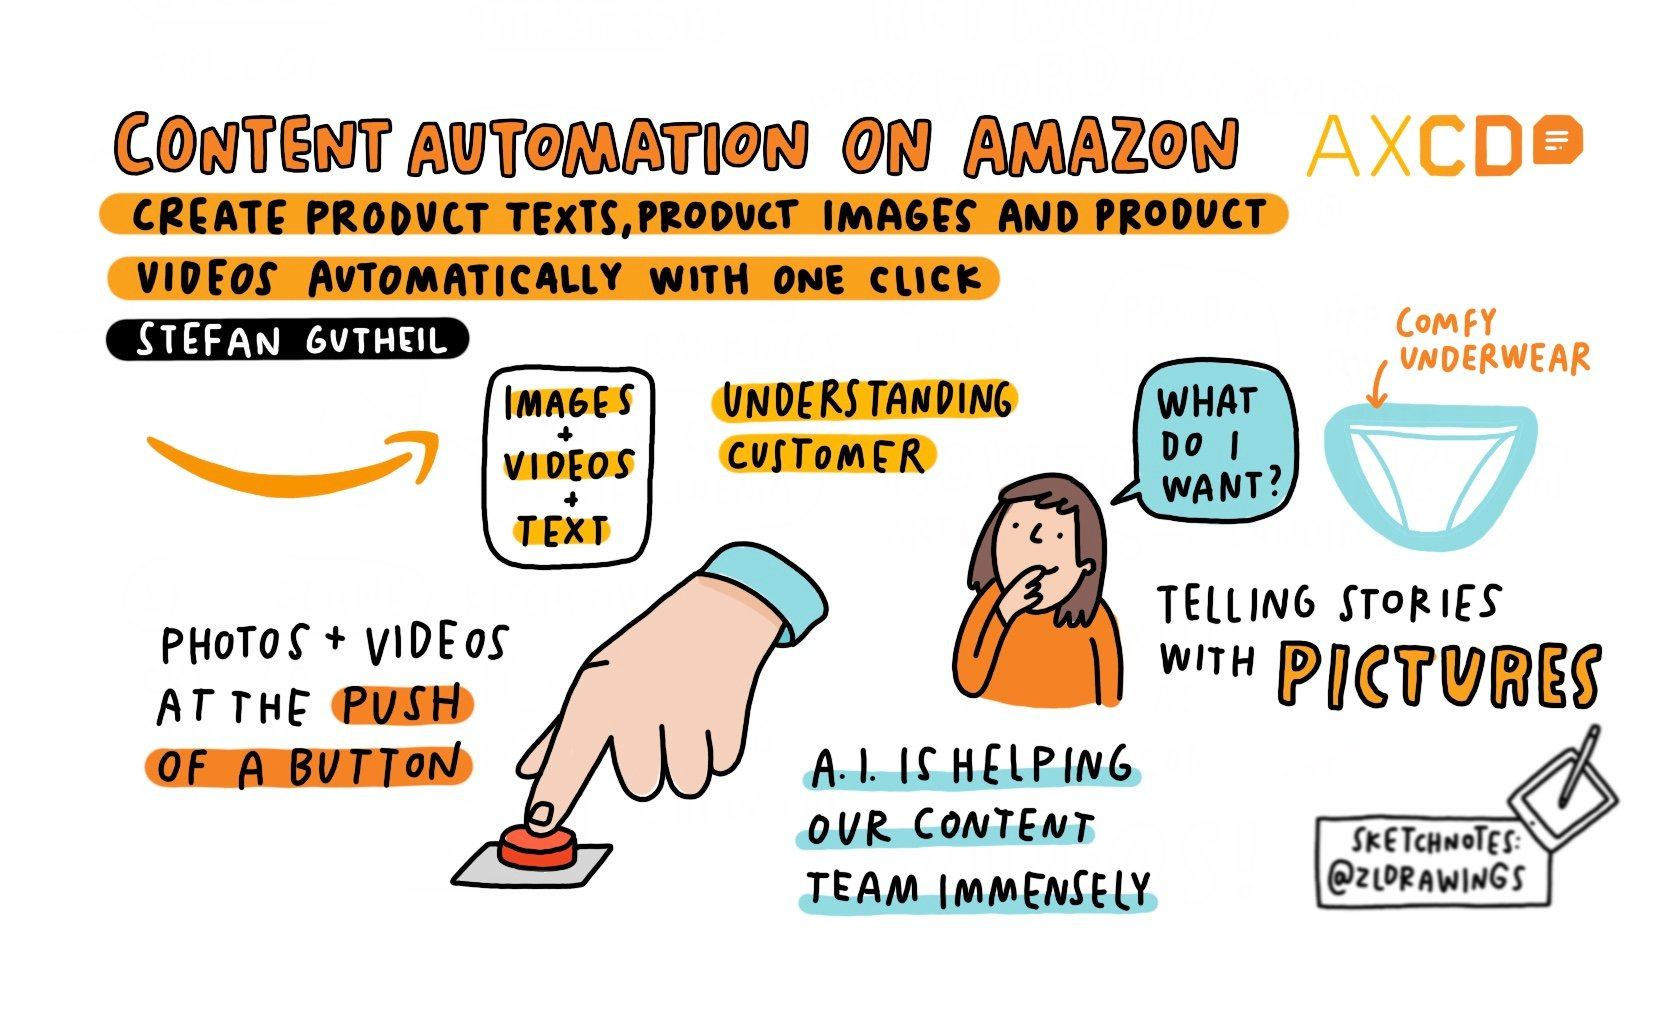 Stefan Gutheil Sketchnote Content Automation on Amazon - AXCD 2020